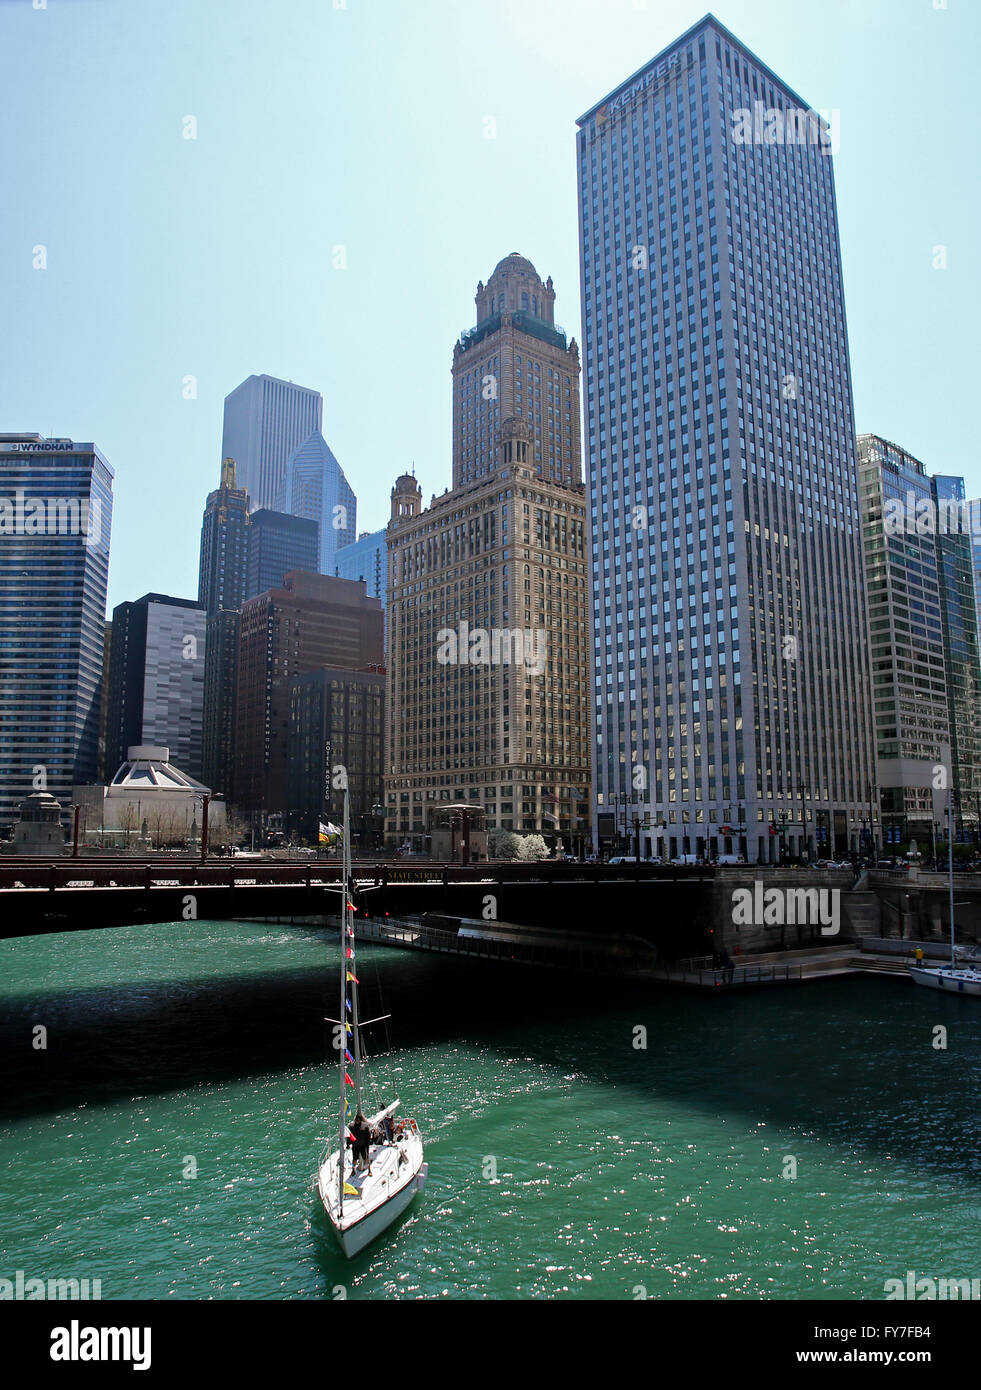 A Sailboat Makes Its Way Up The Chicago River In Chicago